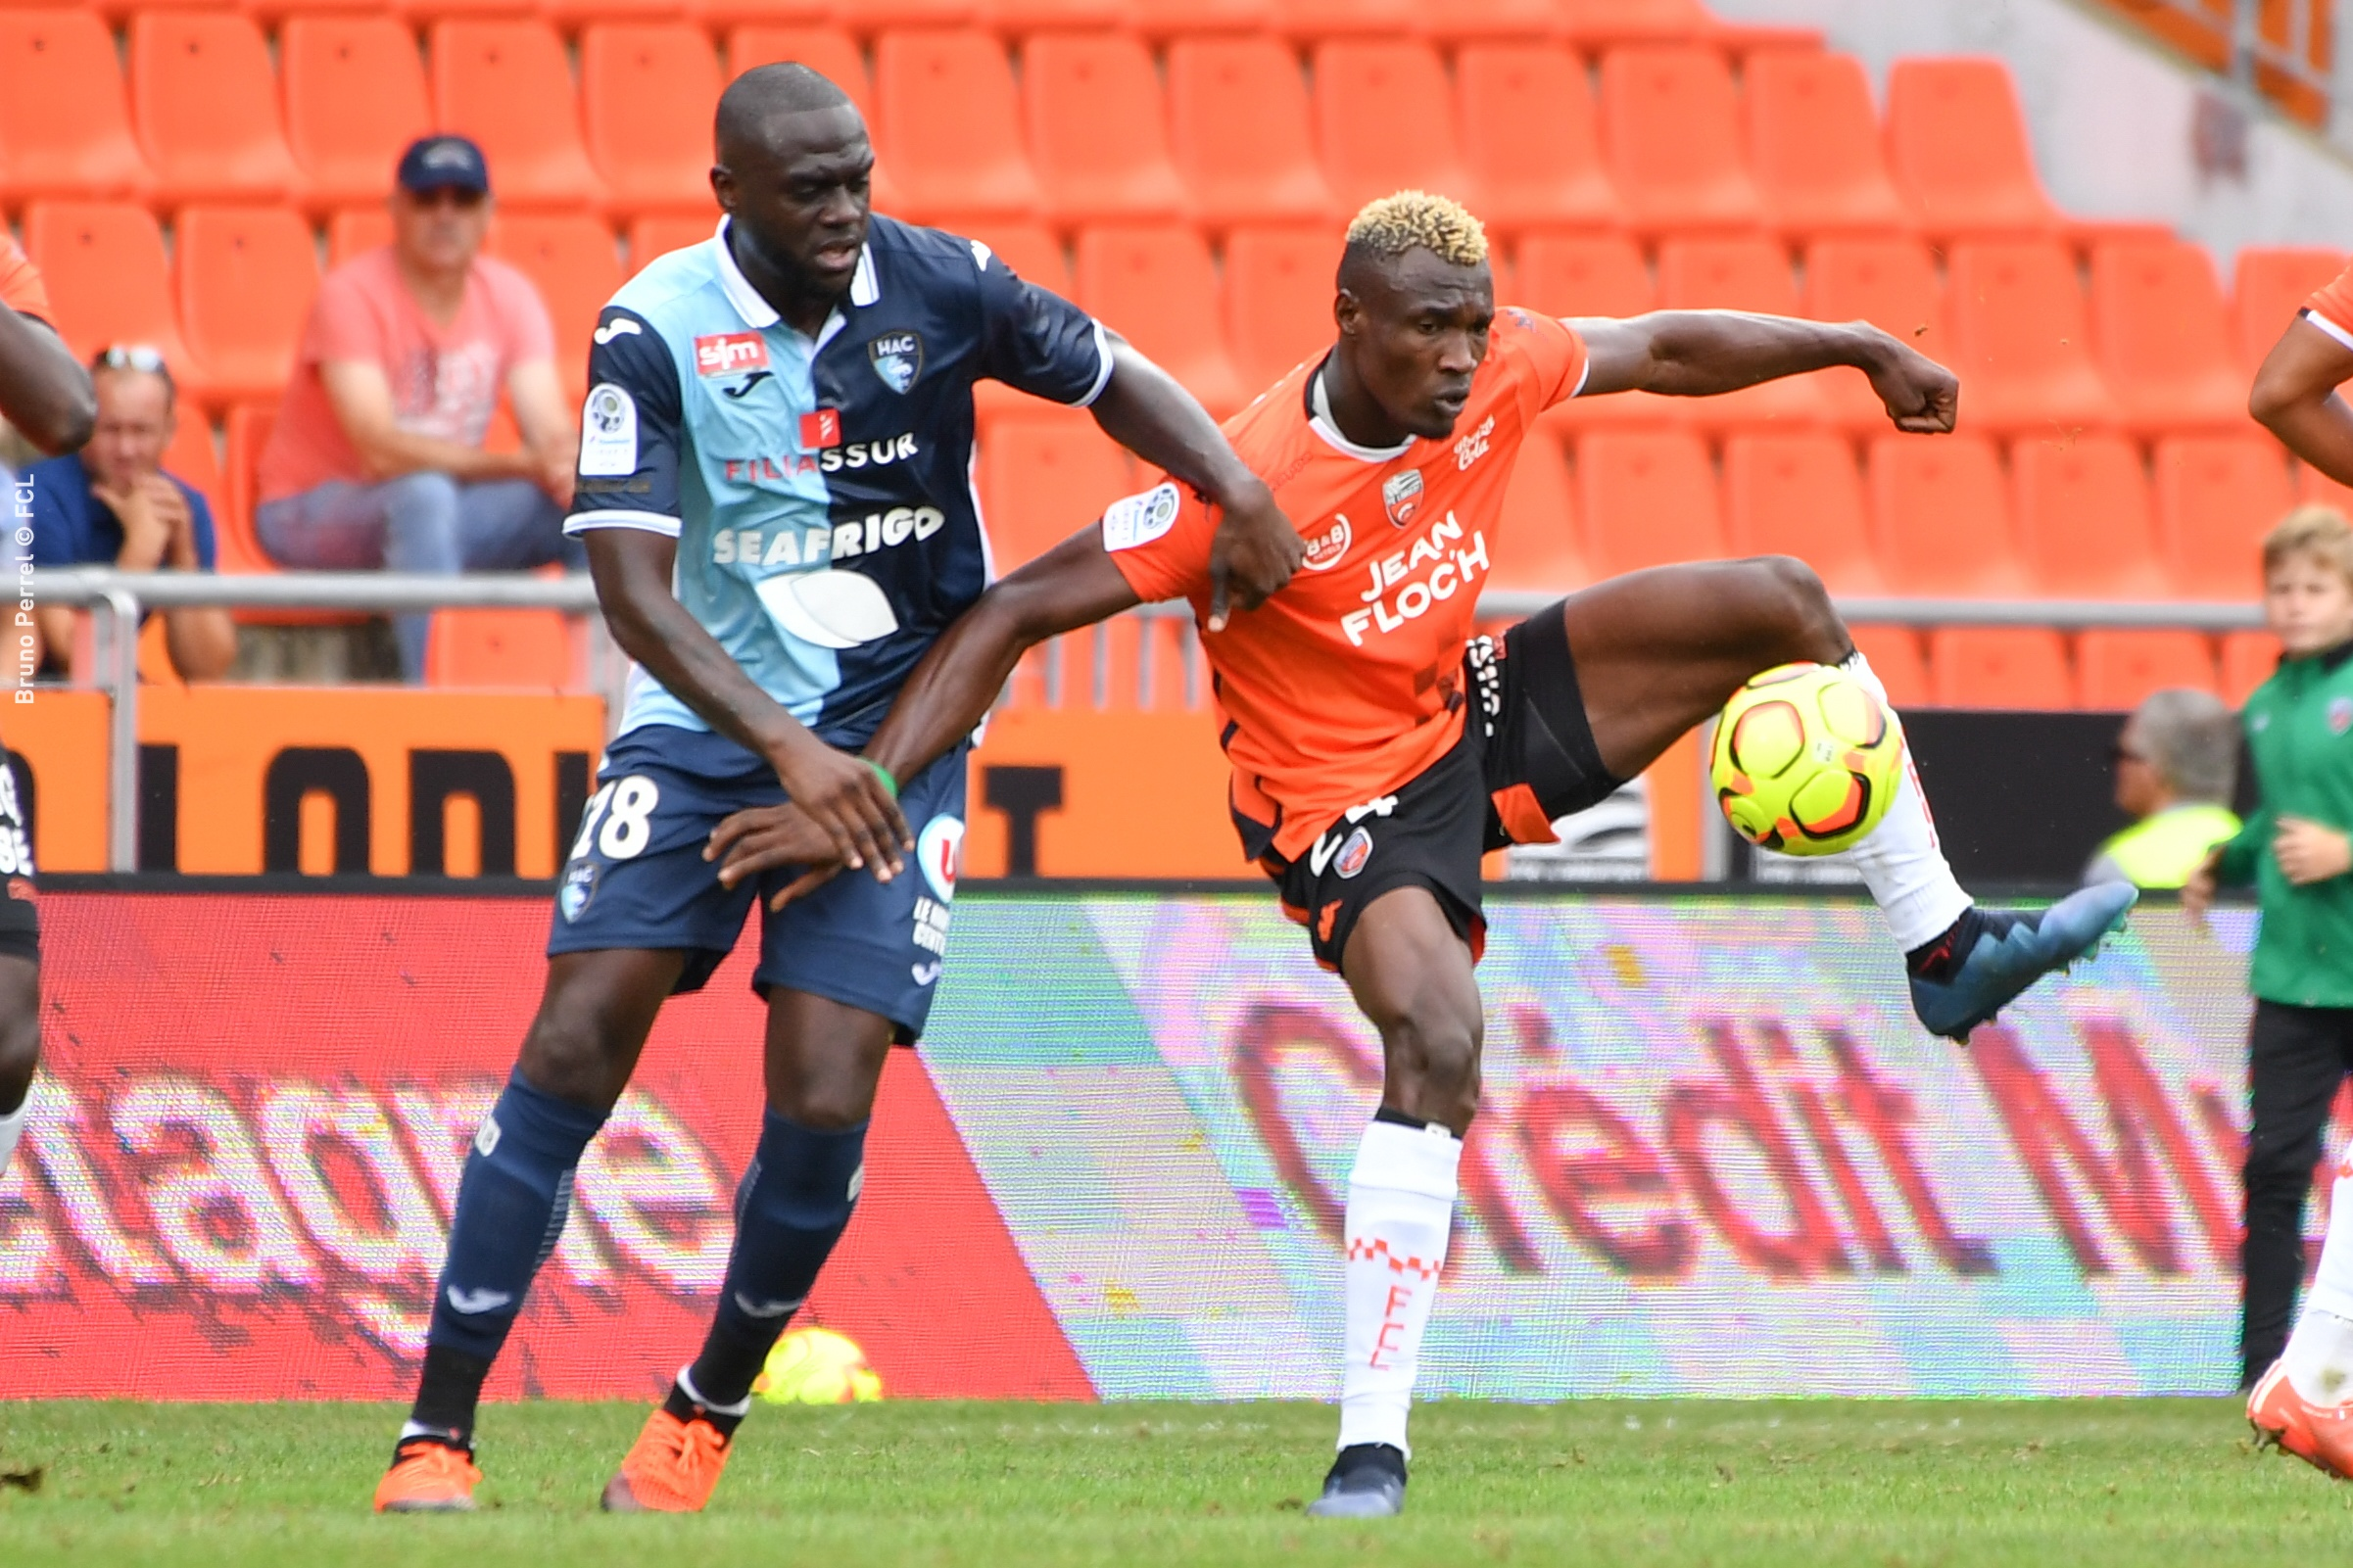 Wadja Franklin (FC Lorient) - YOUGA Amos (Le Havre Athletic Club)